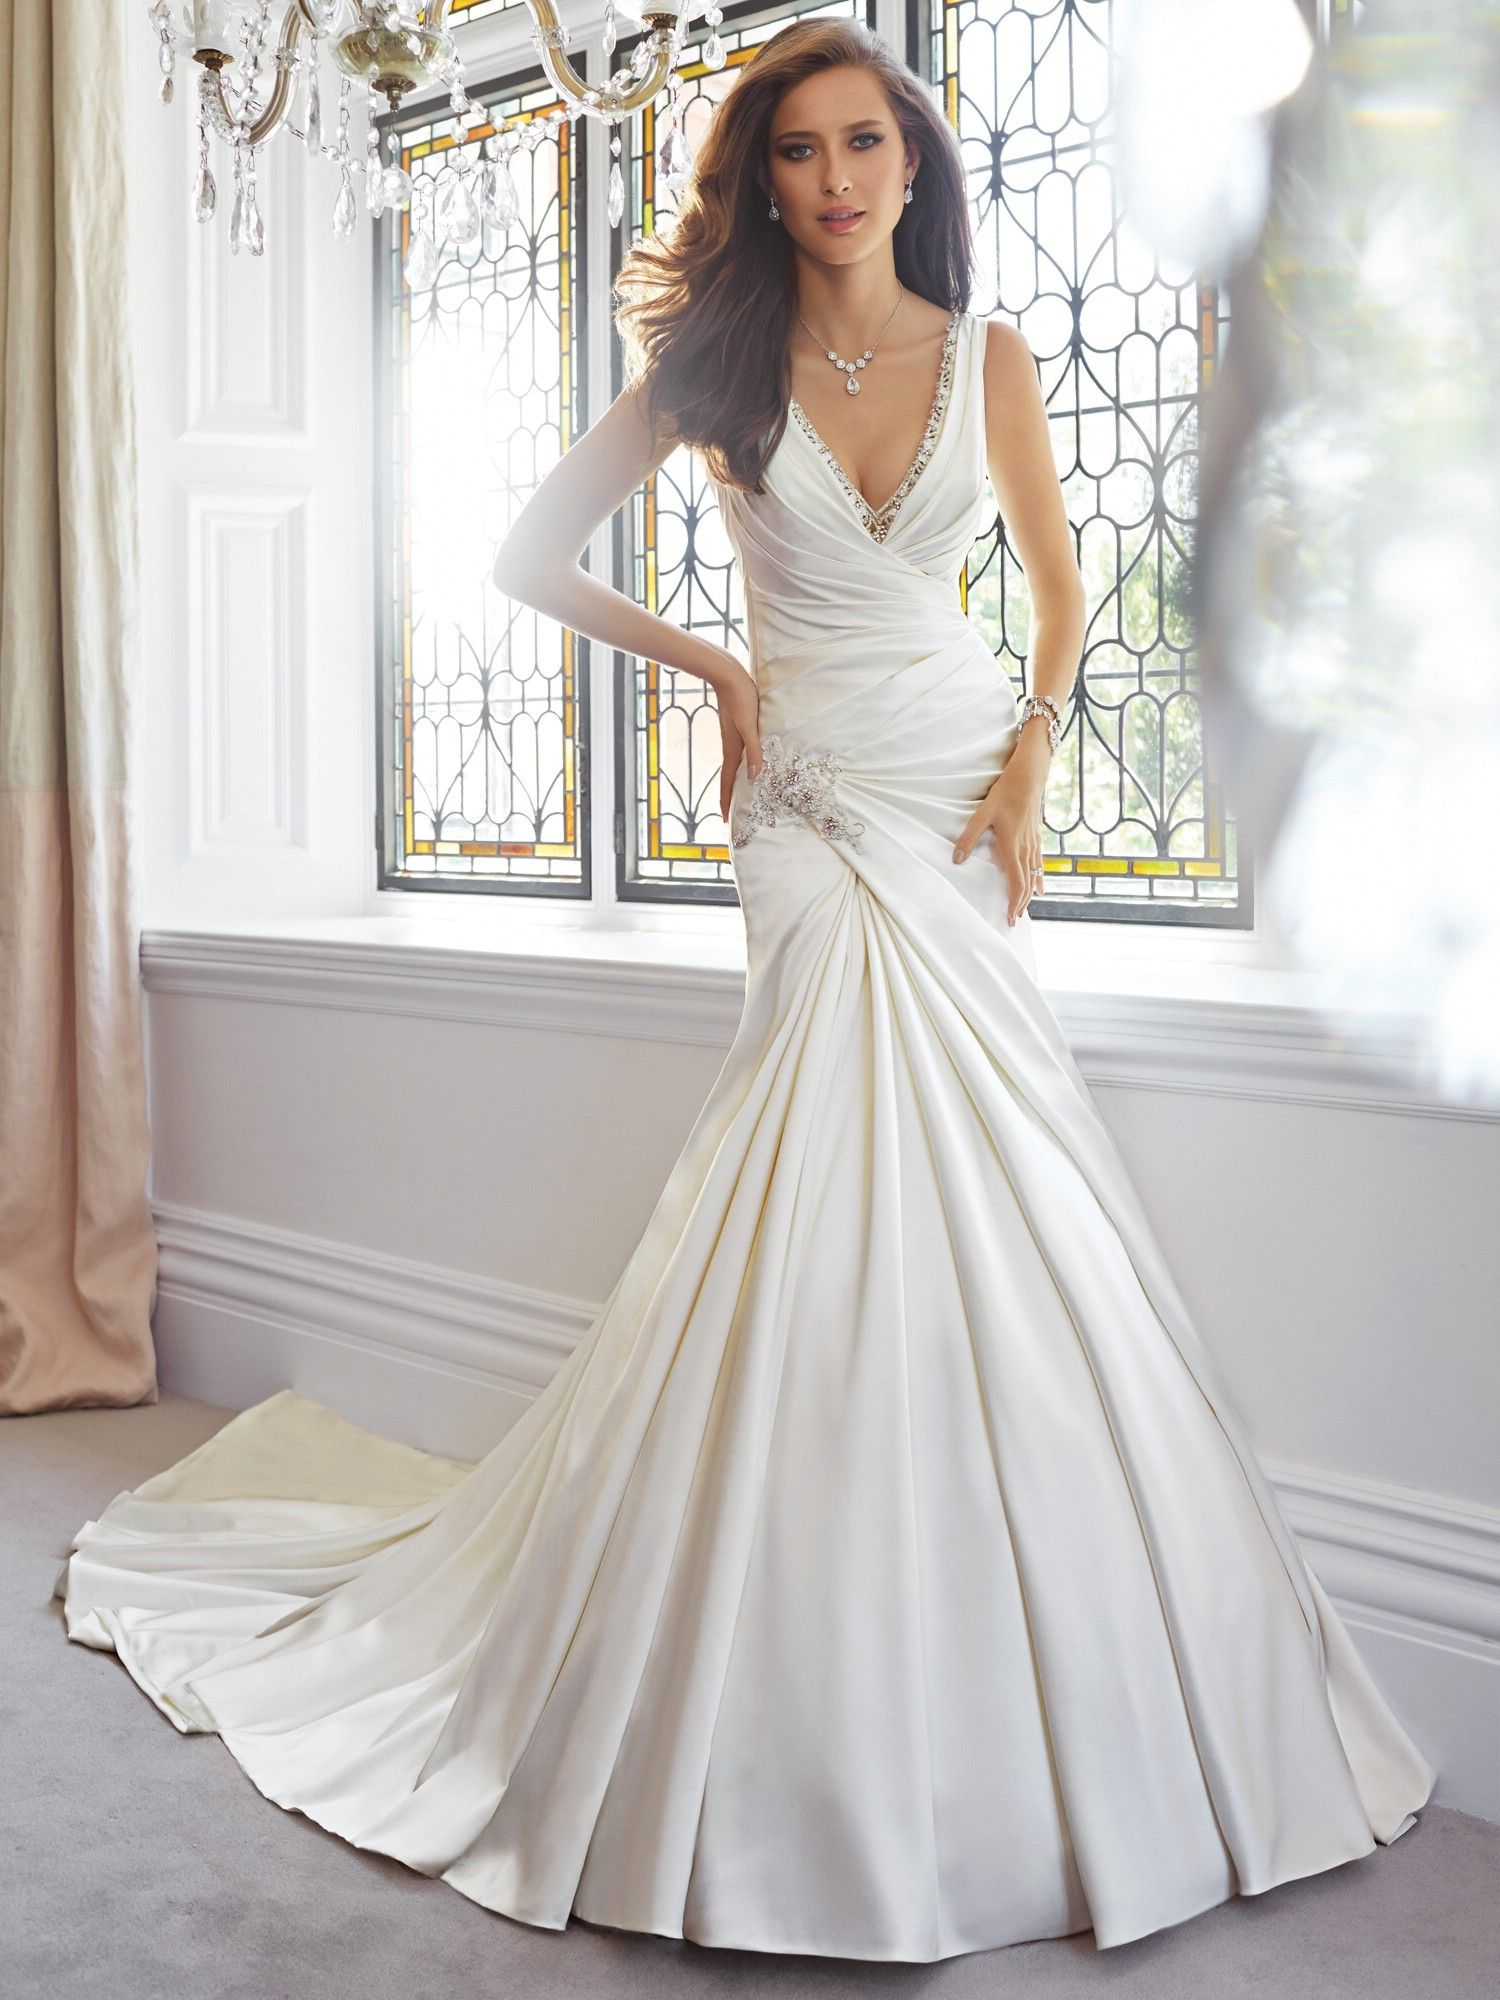 Sophia tolli wedding dresses buscar con google wedding gowns